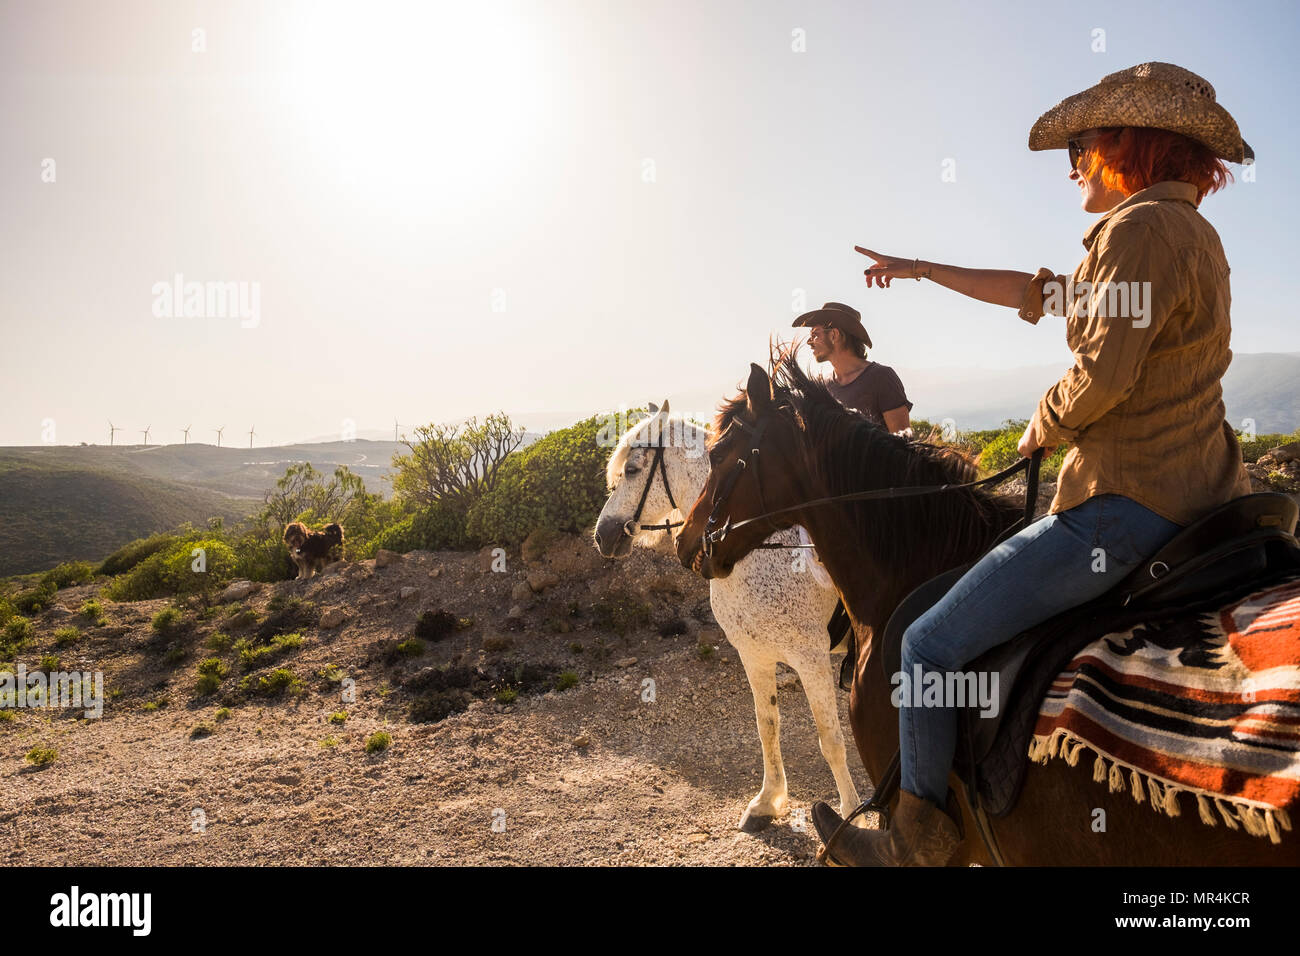 couple in vacation in tenerife ride horses in the nature. wind mill on the background and sunny colored day. dog and animals outdoor leisure activity  - Stock Image